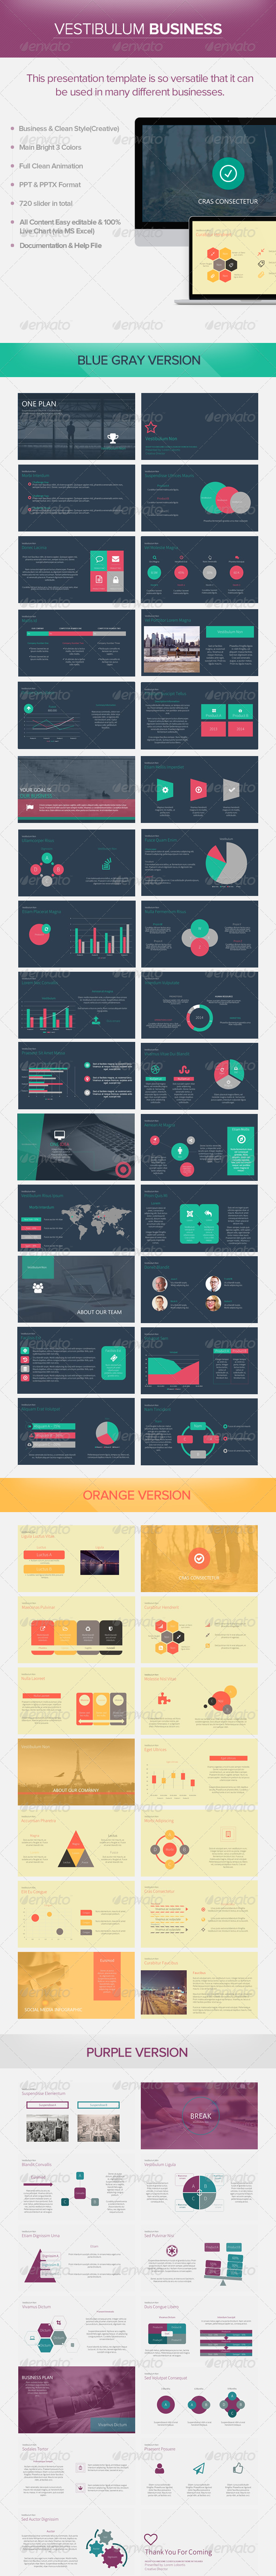 GraphicRiver Vestibulum Business Powerpoint Presentation 7934629